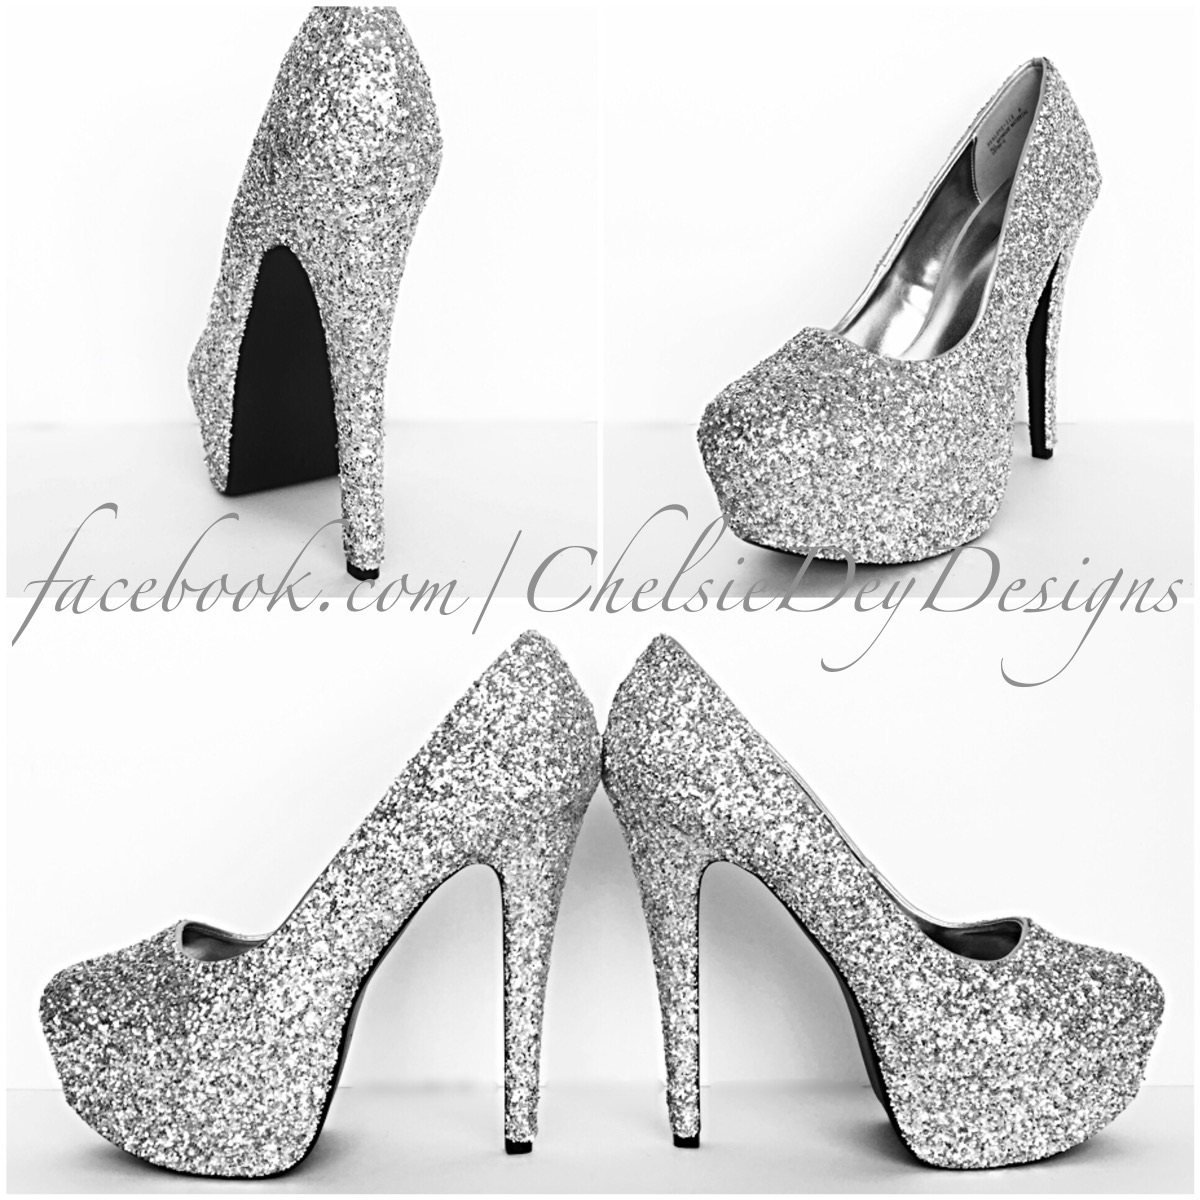 Silver Glitter High Heels, Grey Platform Pumps, Sparkly Prom Shoes ...